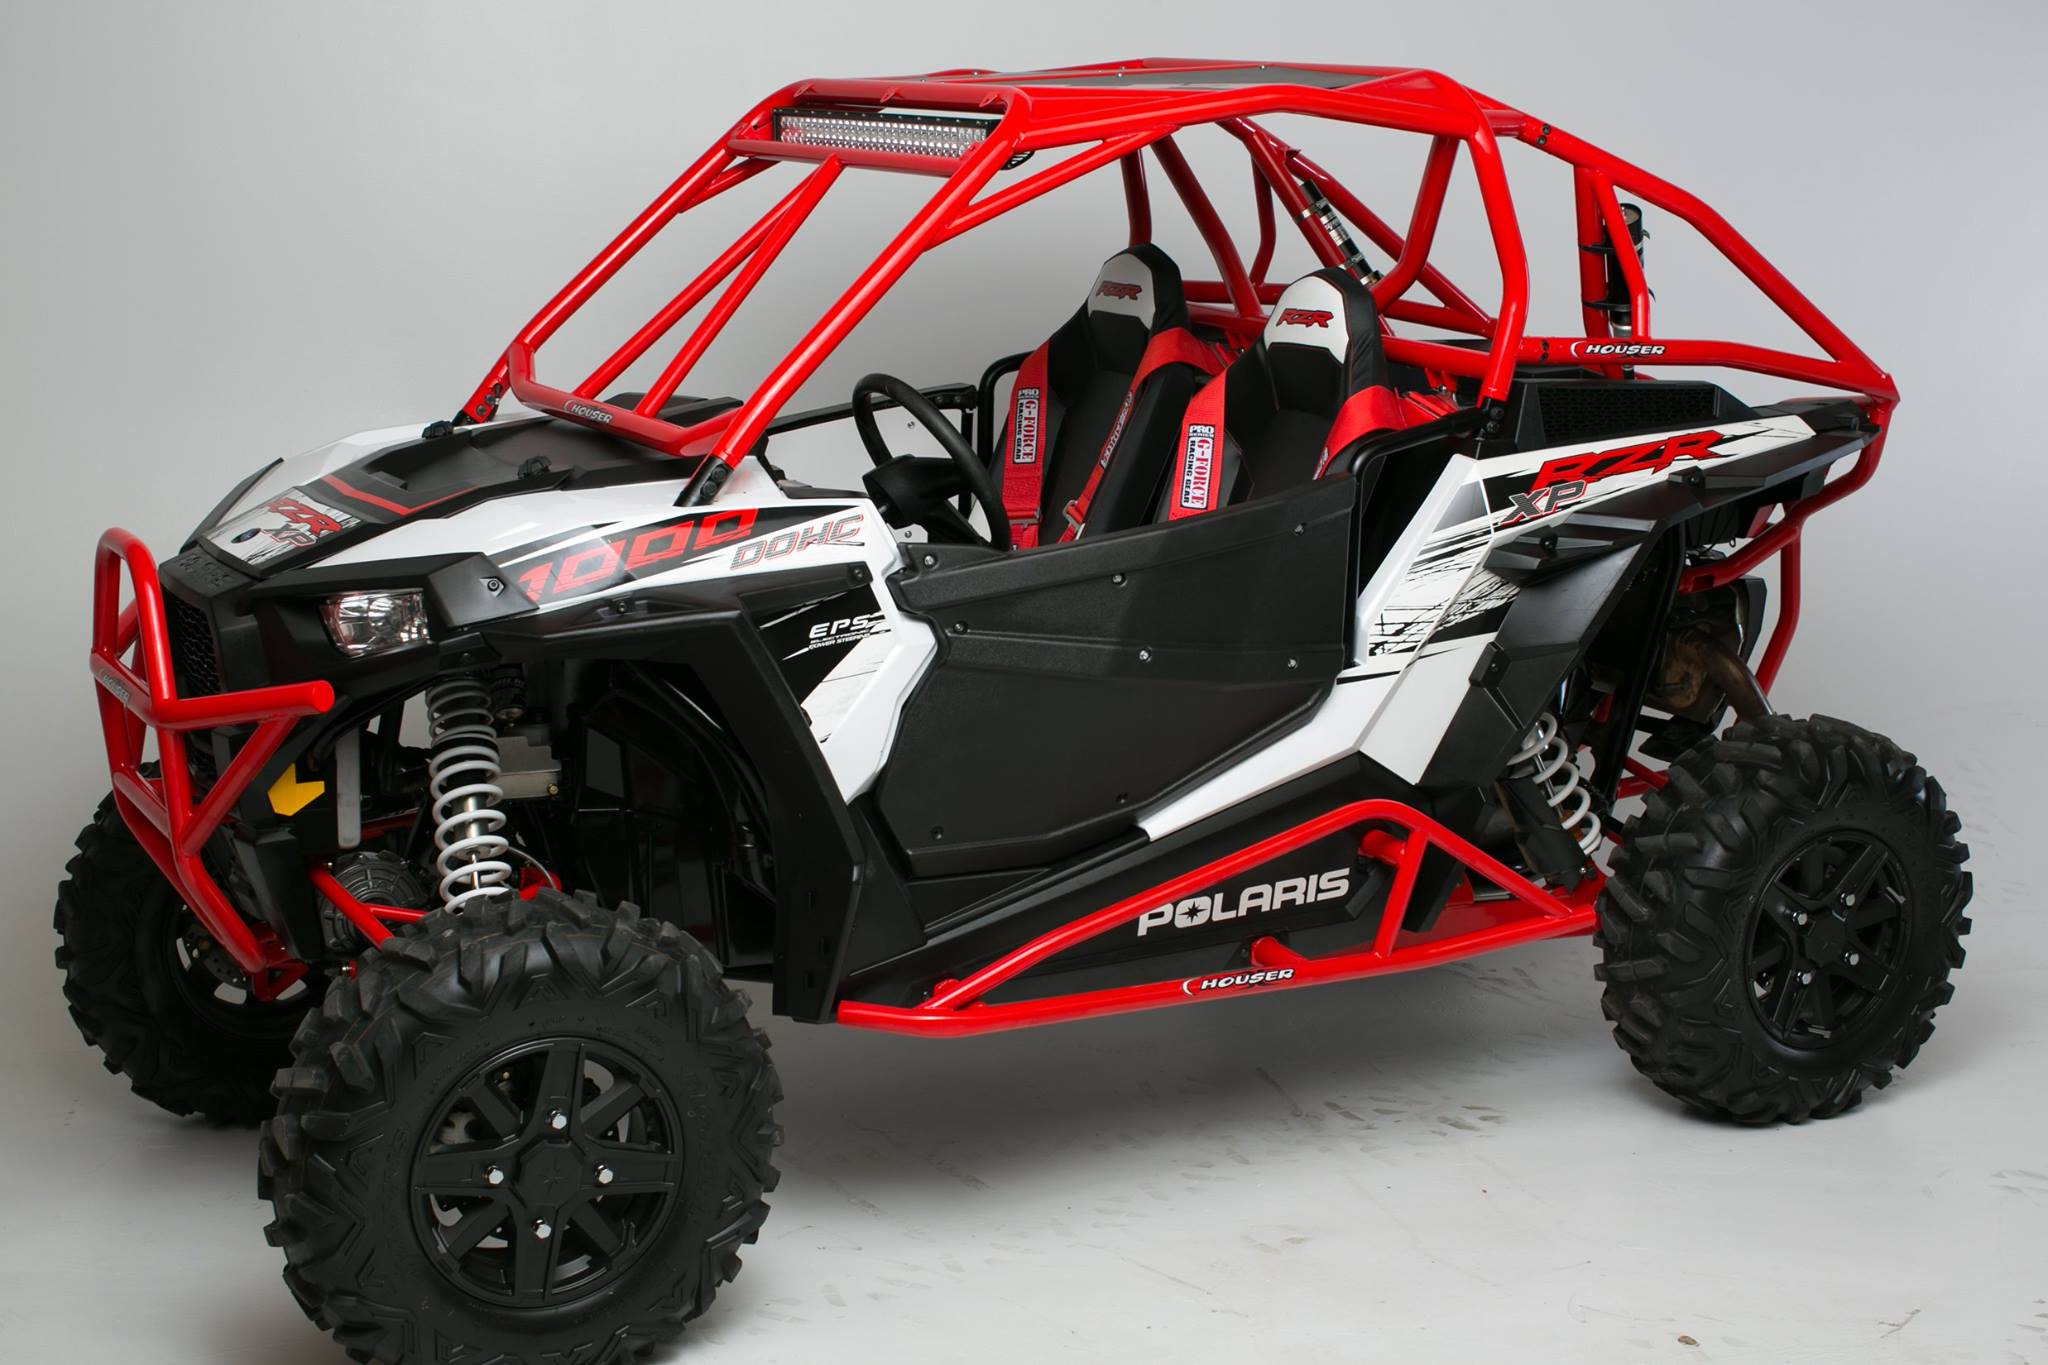 Rzr 1000 Dimensions >> Guardian II Roll Cage - Page 2 - Polaris RZR Forum - RZR Forums.net